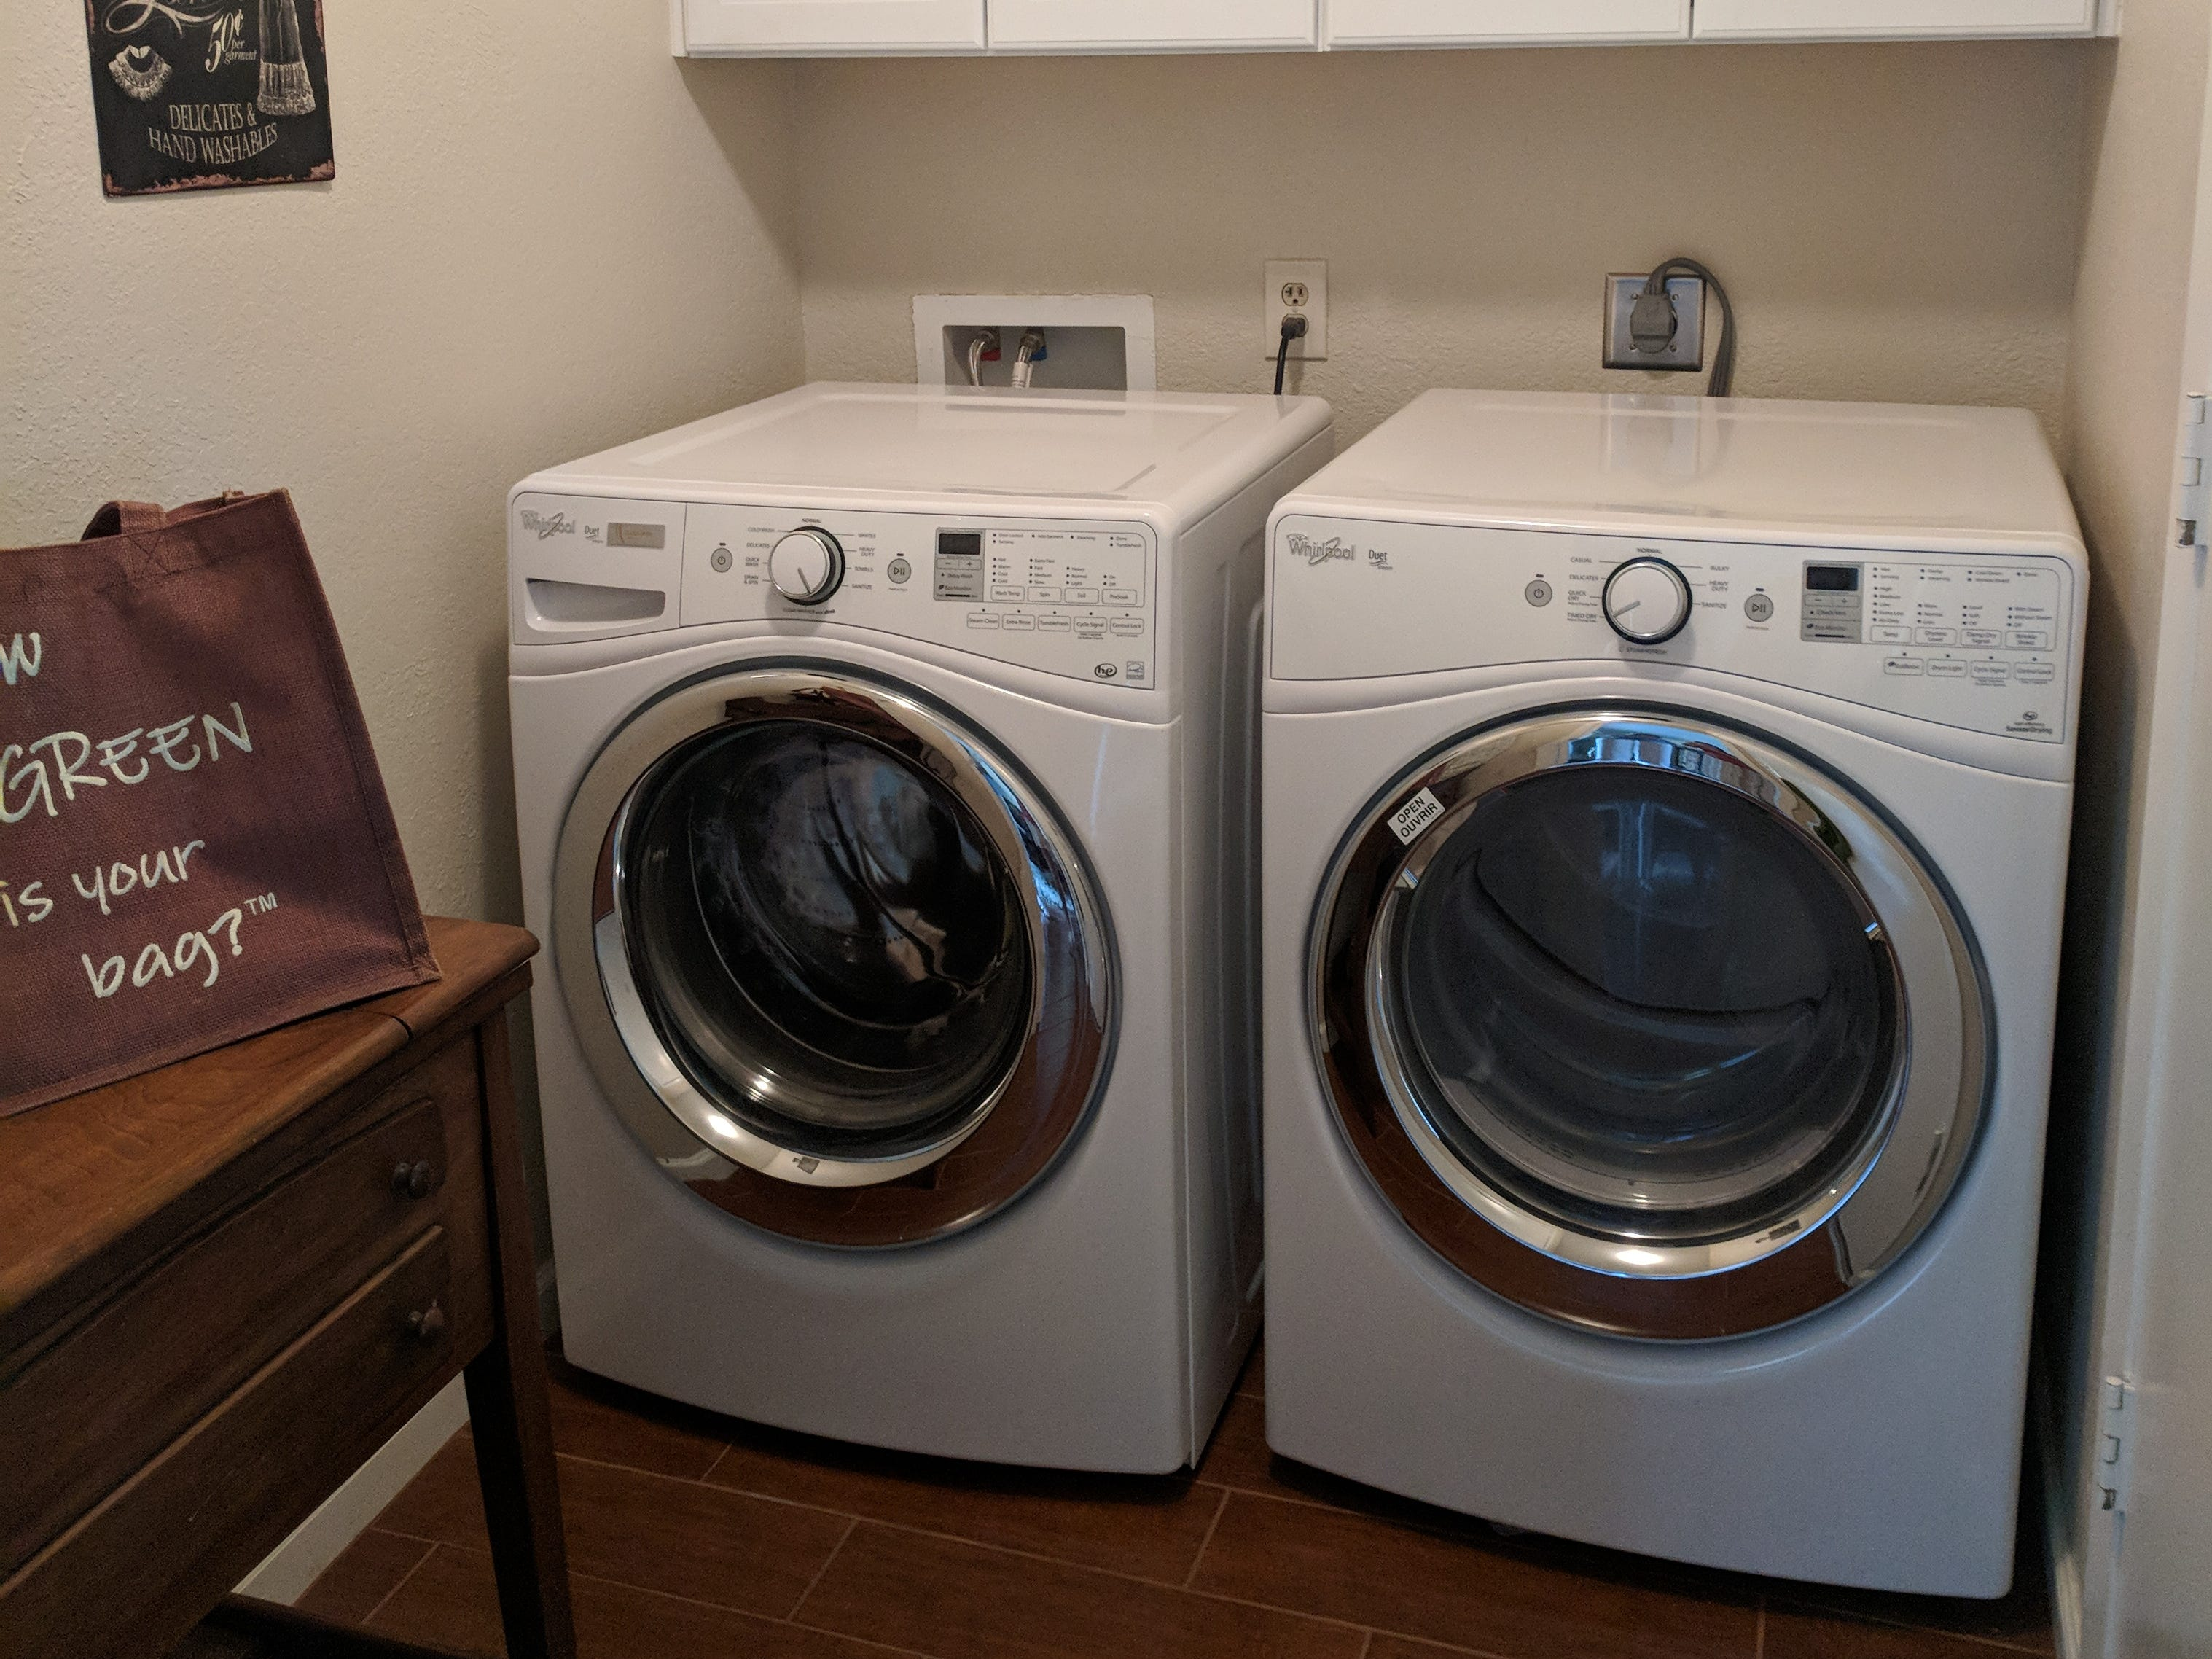 Green gutted her laundry room after finding mold in the walls, and outfitted the new room with a water-saving, front-loading washer and dryer set.